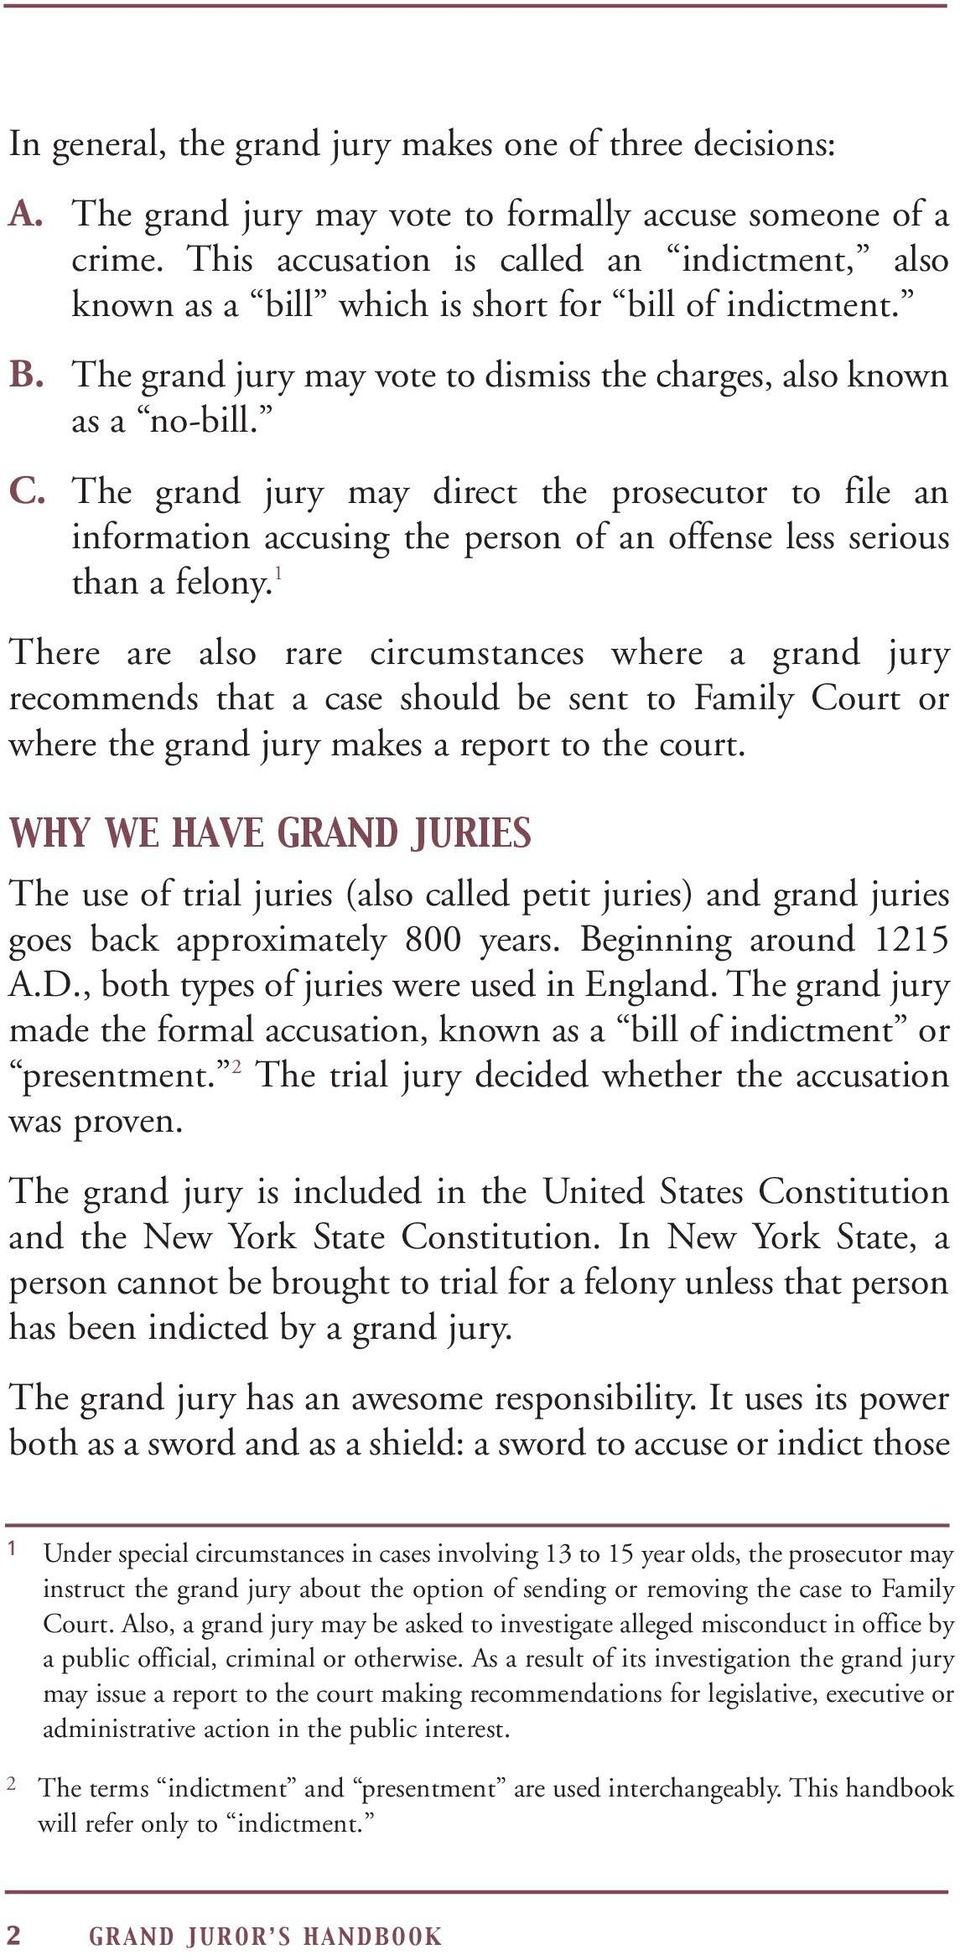 The grand jury may direct the prosecutor to file an information accusing the person of an offense less serious than a felony.